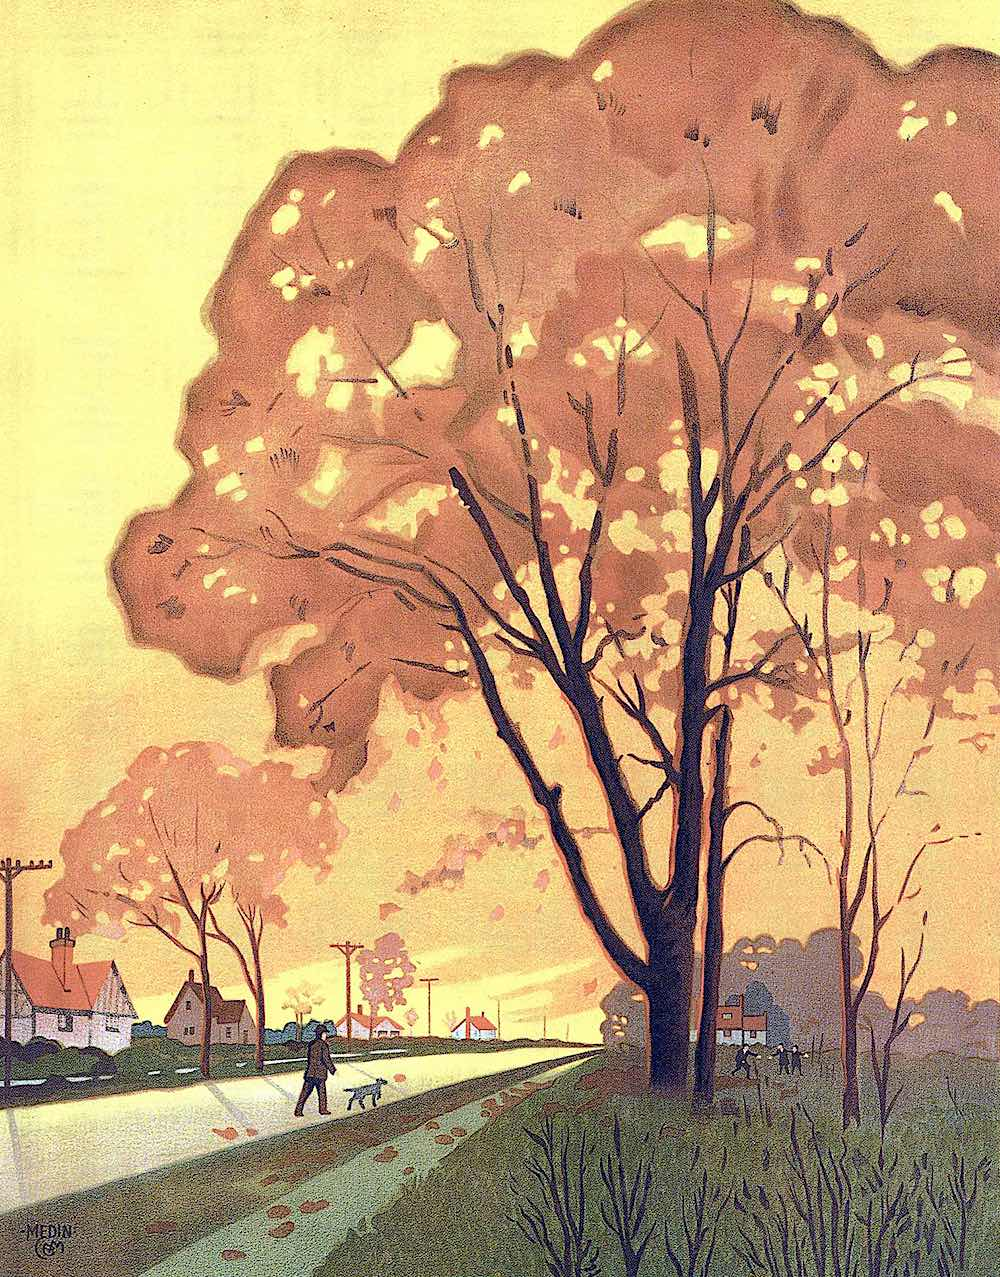 a 1920s Charles B. Medin illustration of a man walking his dog on an Autumn road